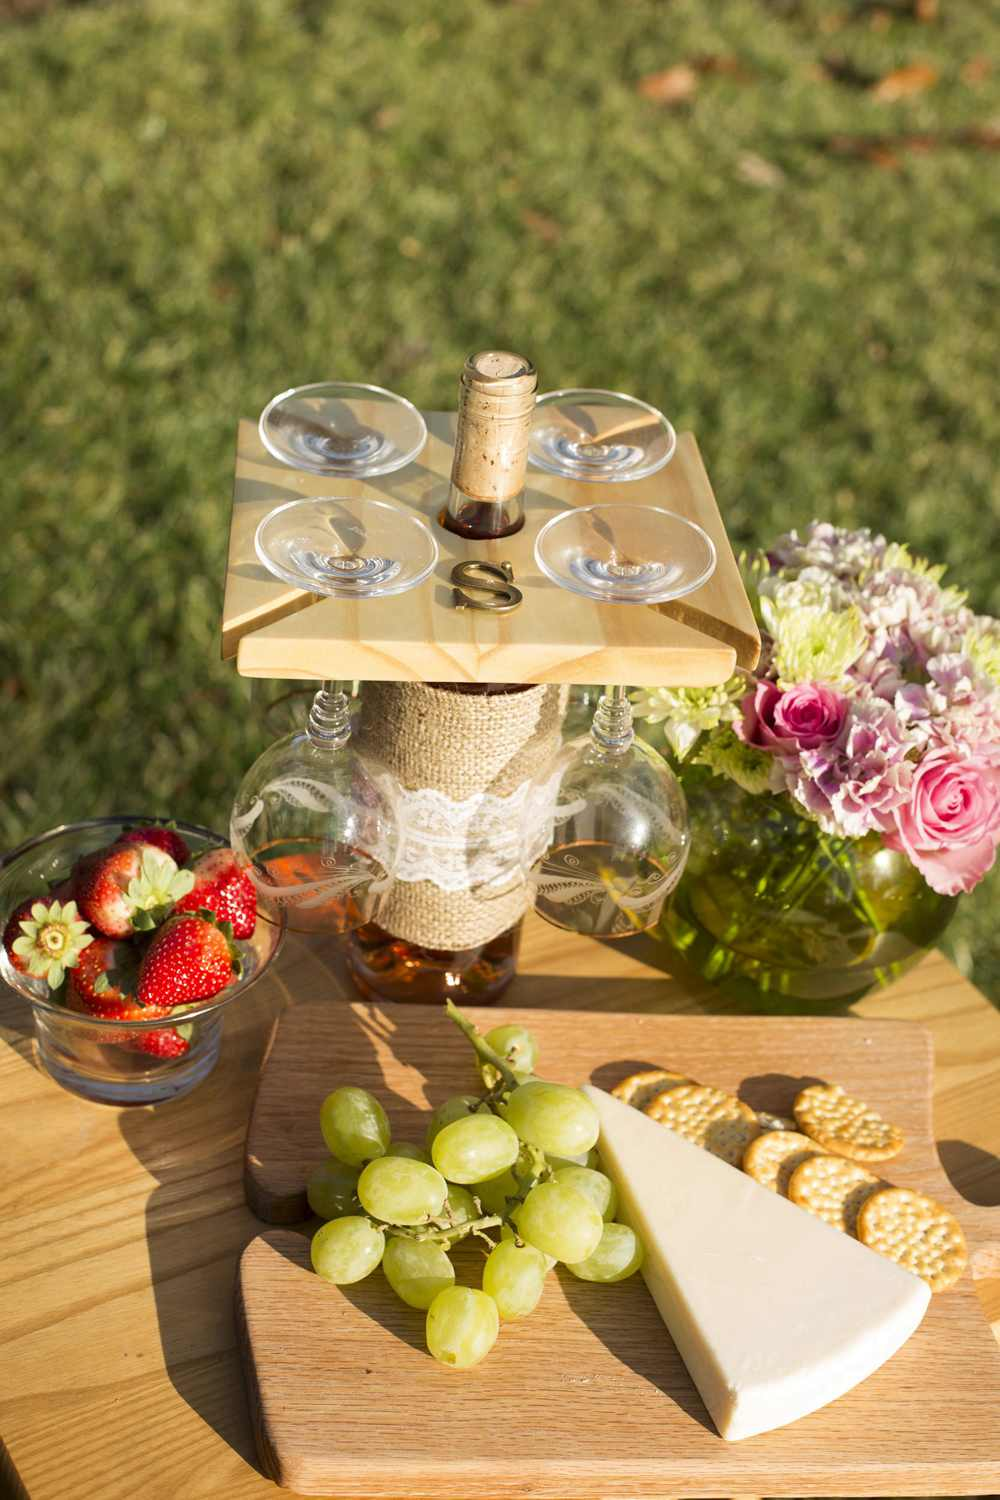 3. DIY Wine Glass Holder